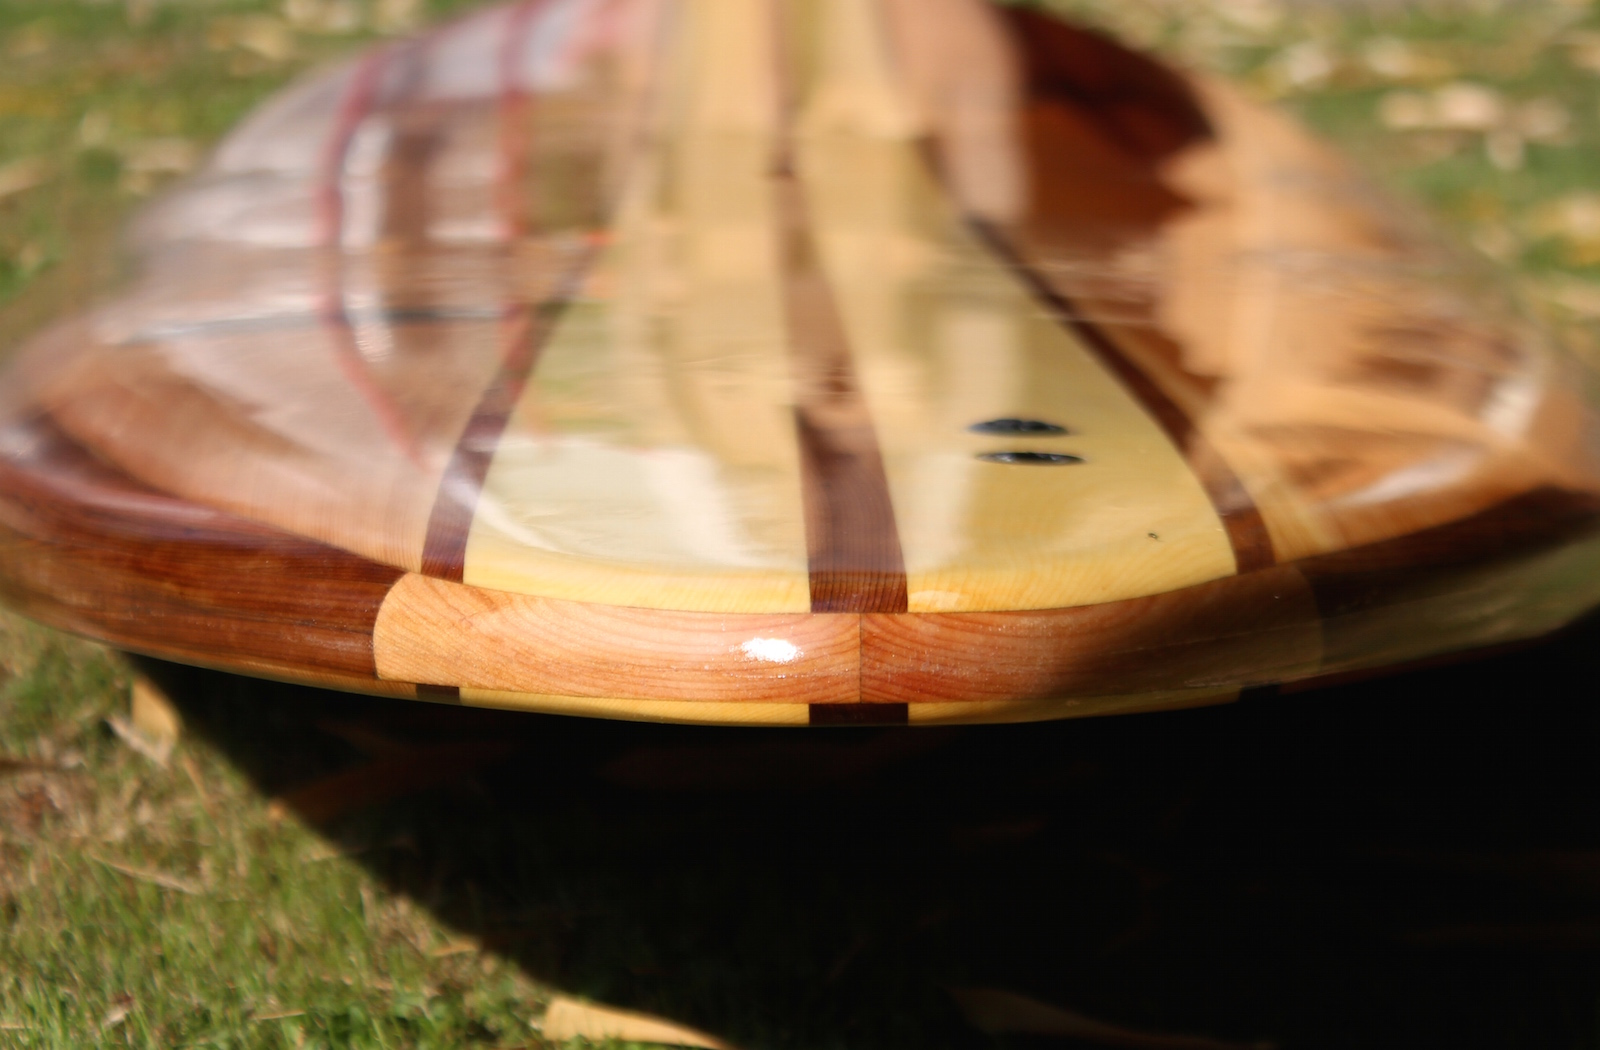 Hollow wood paddle board - tail